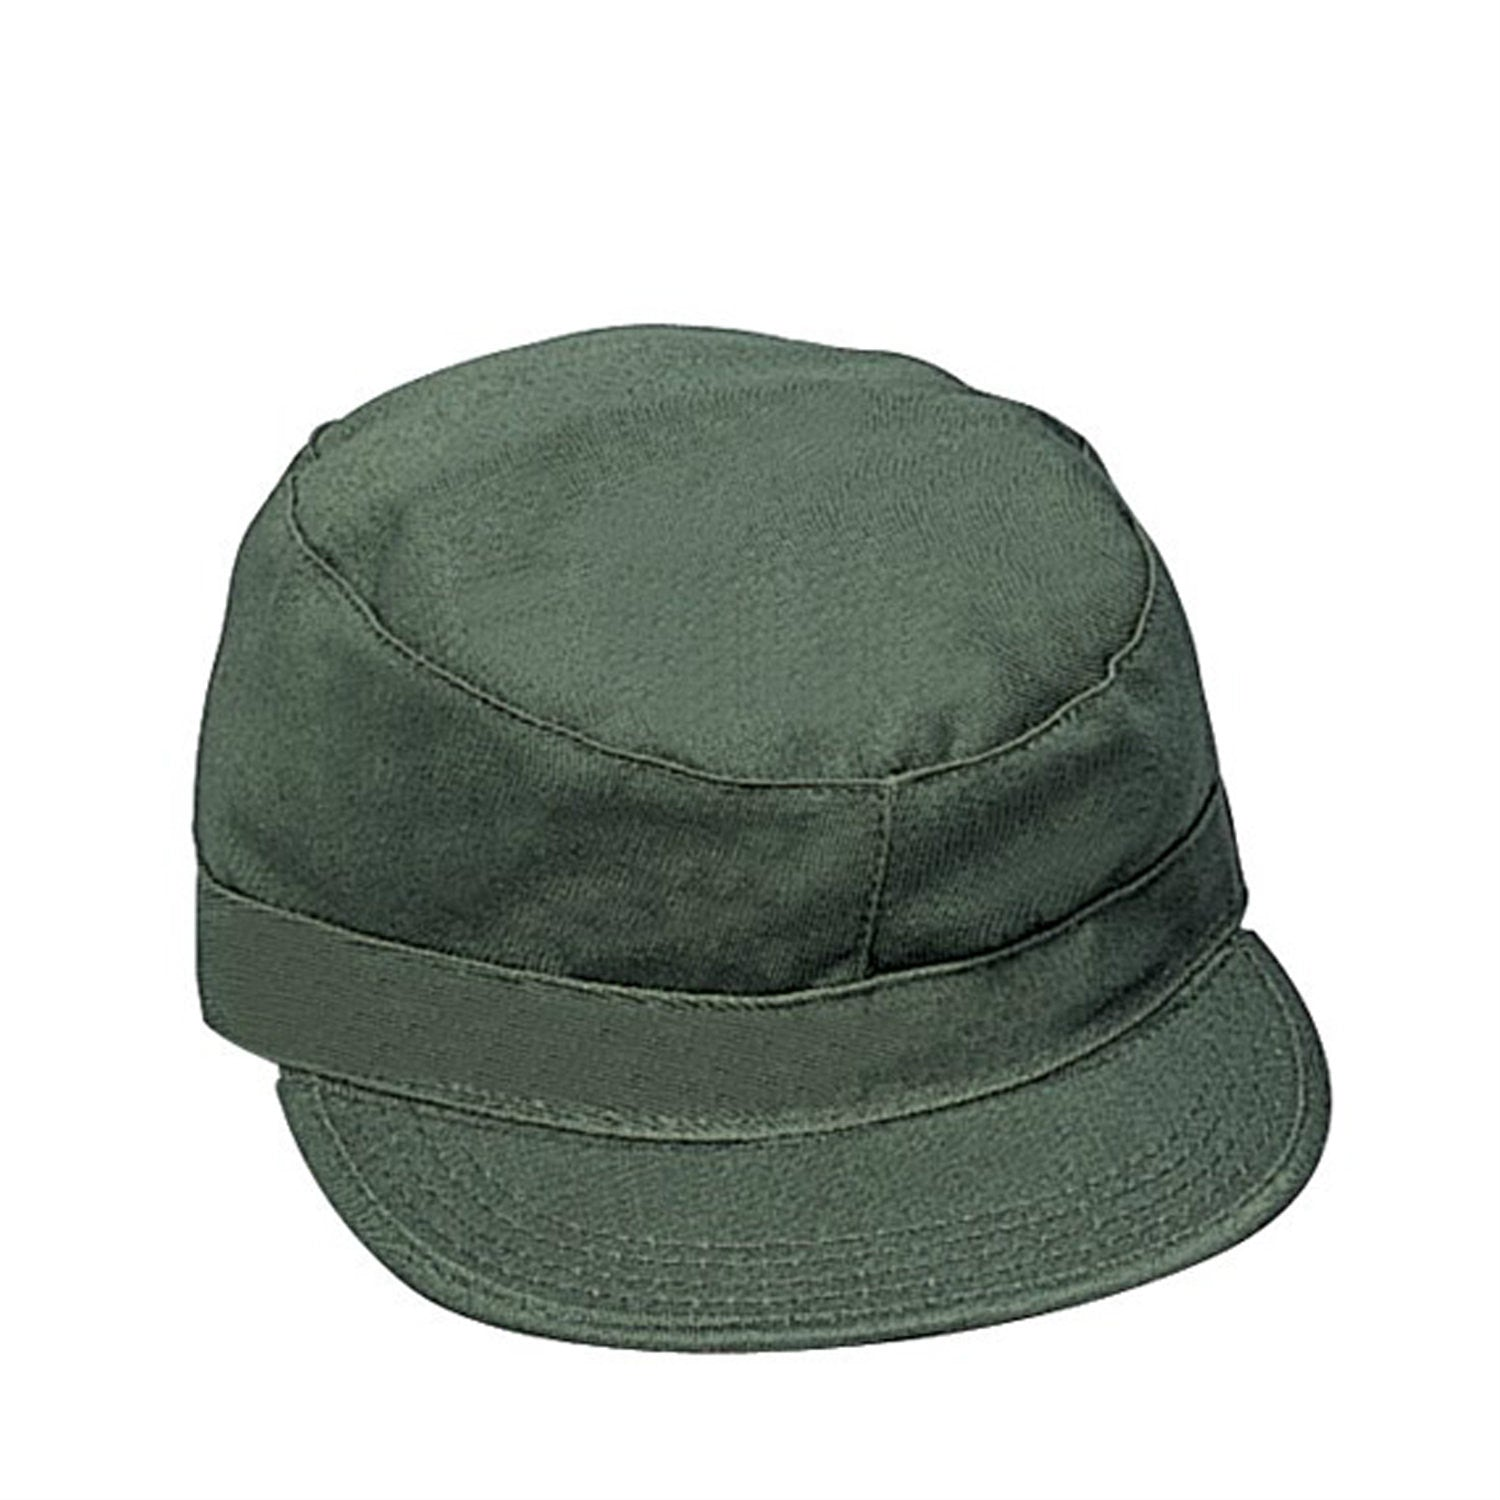 Solid Color Fatigue Hat